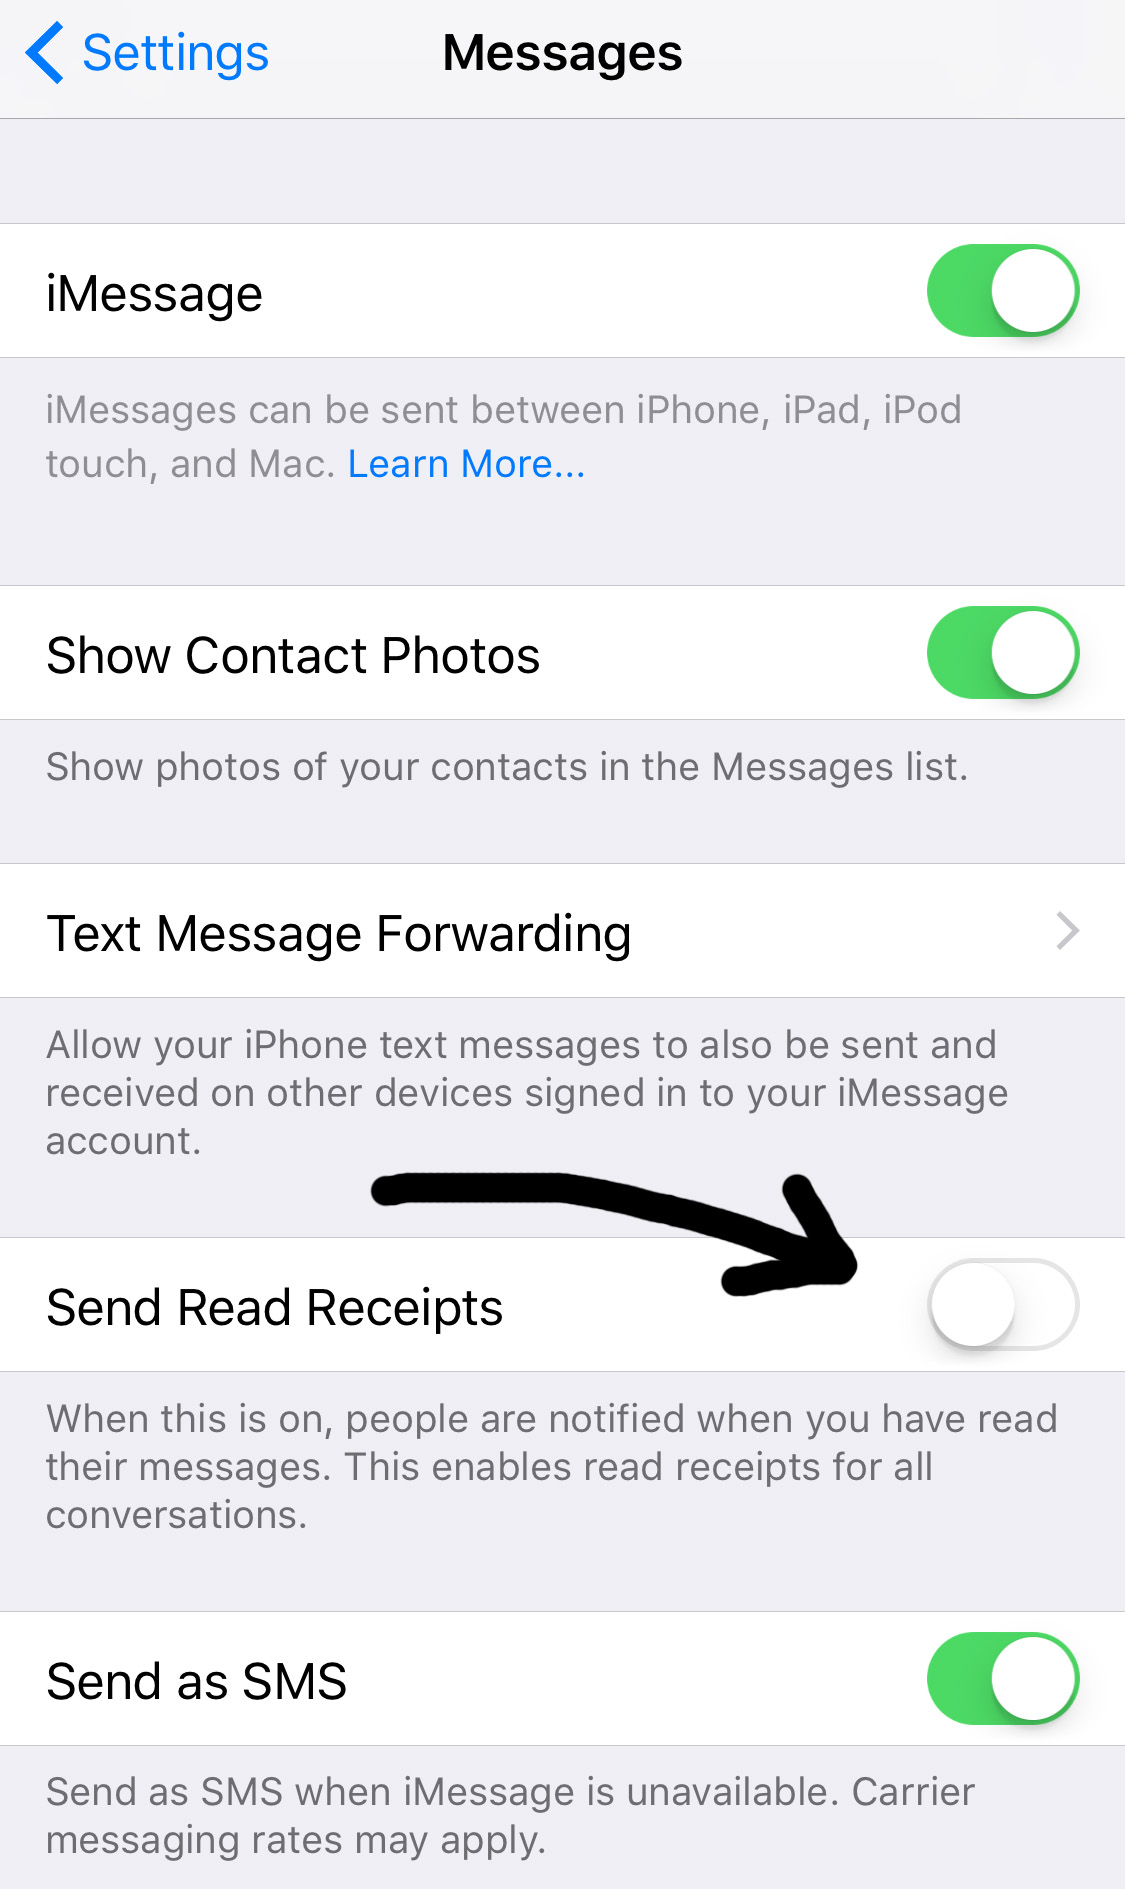 theeditorstouch.com | Removing The 'Read Receipt' Setting On An iPhone | The Editor's Touch